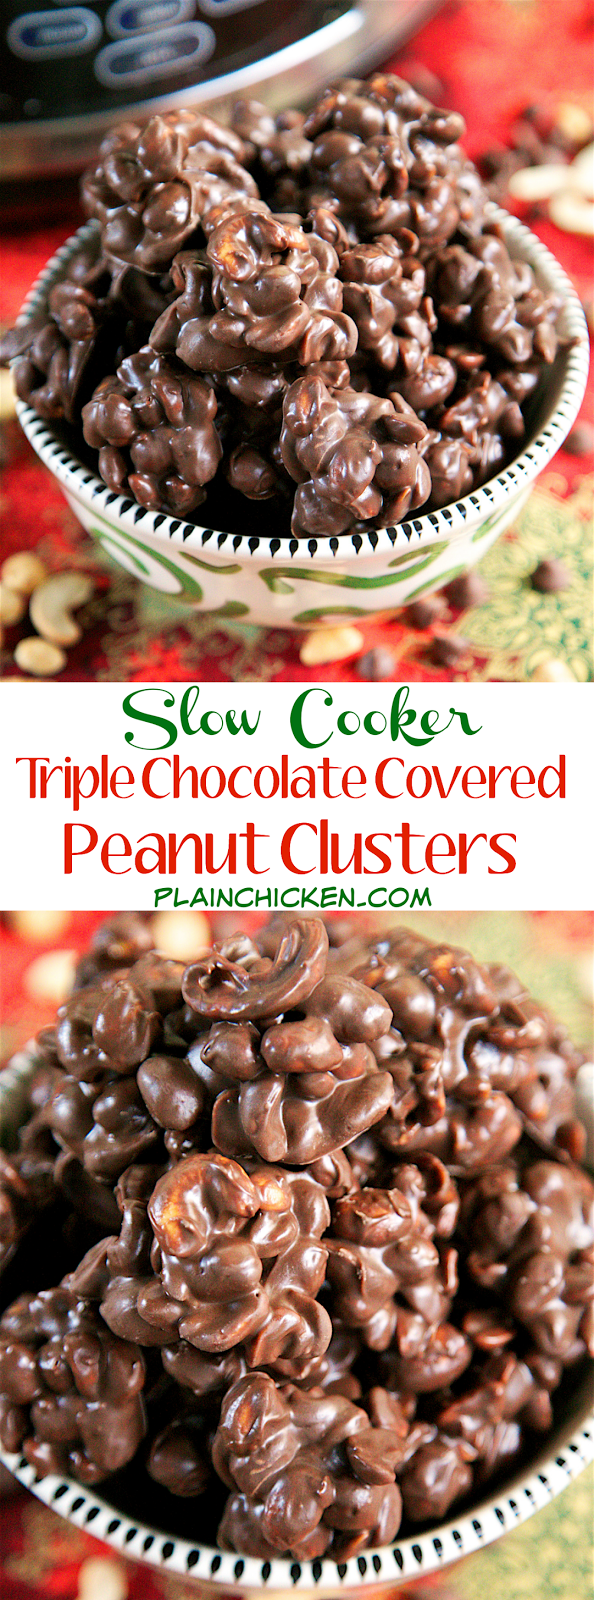 {Slow Cooker} Triple Chocolate Covered Peanut Clusters recipe - three types of chocolate, peanuts and cashews slow cook for 2 hours. Perfect for parties and homemade gifts. Can make and freeze for up to 1 month. Everybody raves about these!